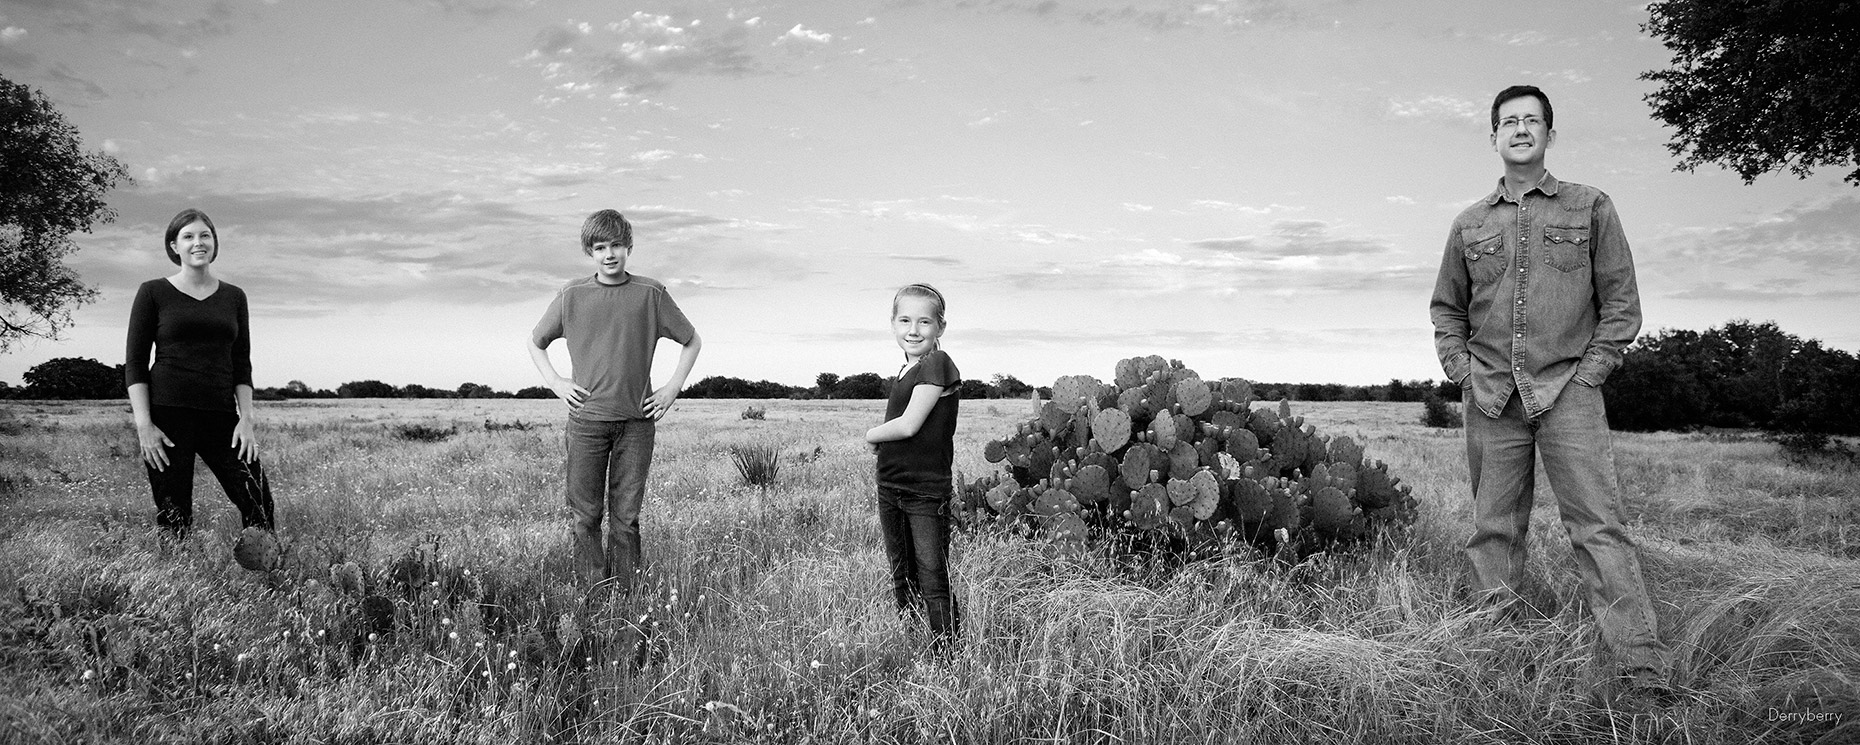 Dallas photography family portrait at ranch in West Texas panoiramic landscape